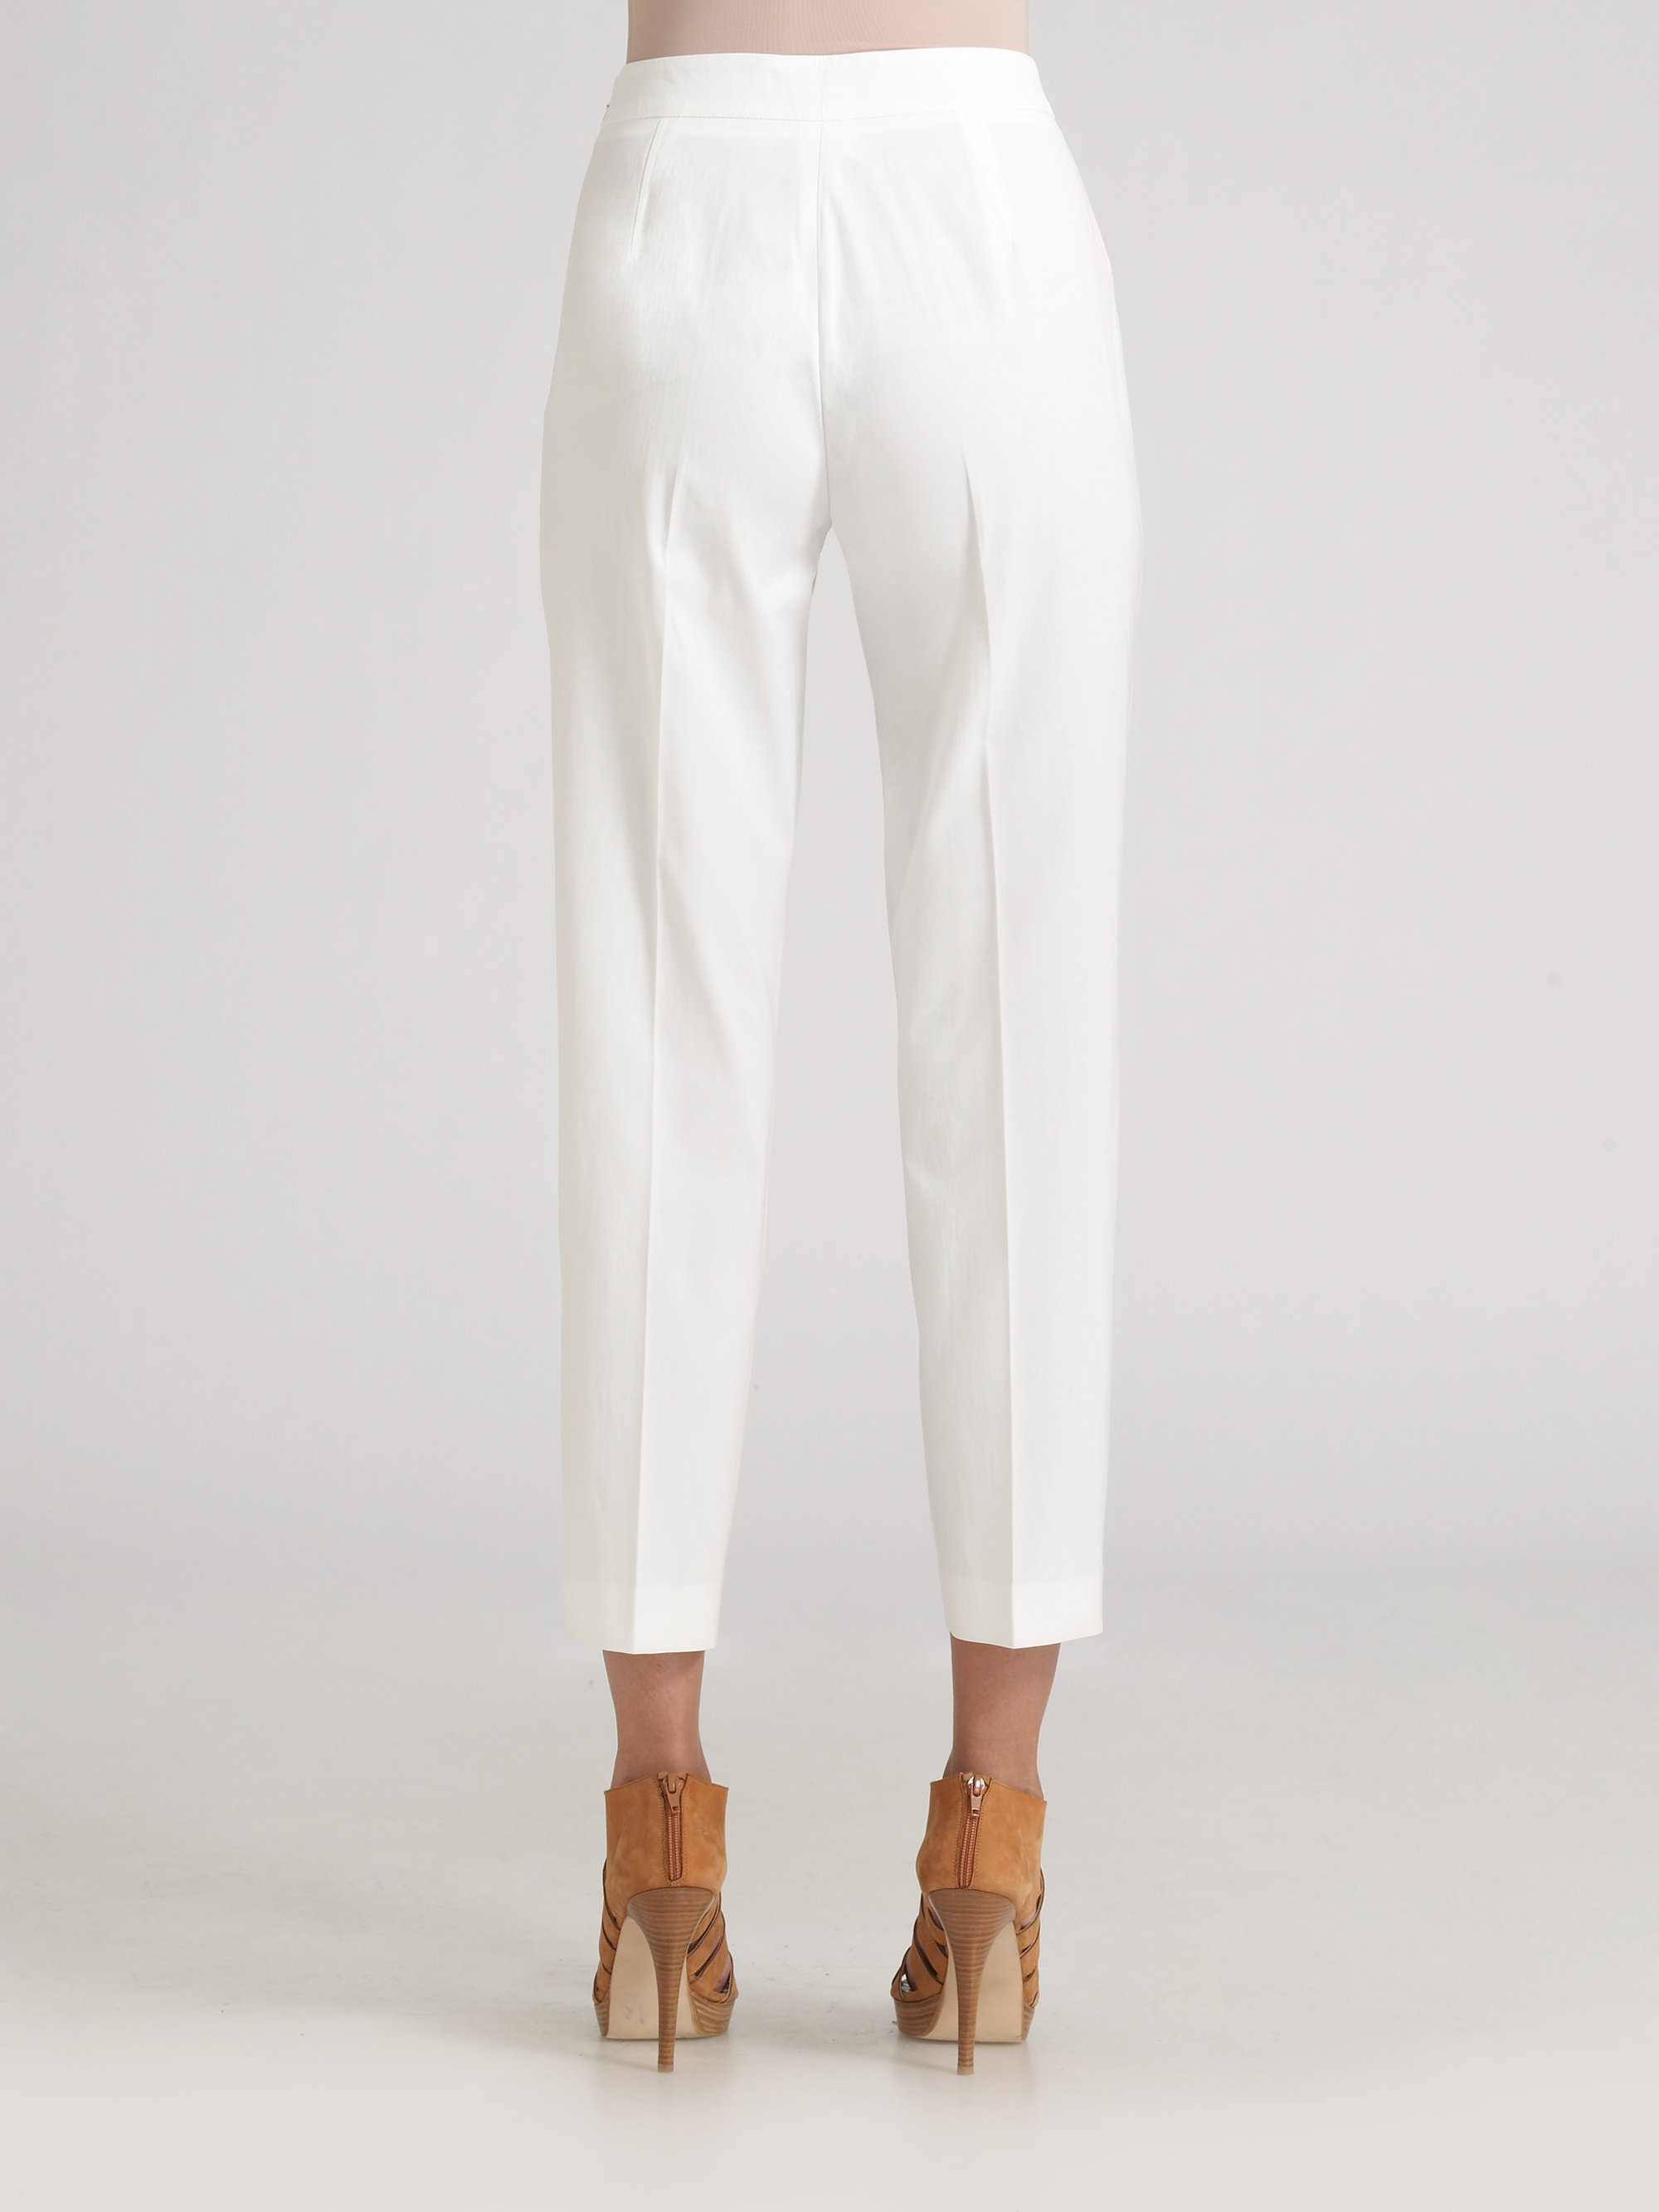 Etro Capri Pants in White | Lyst